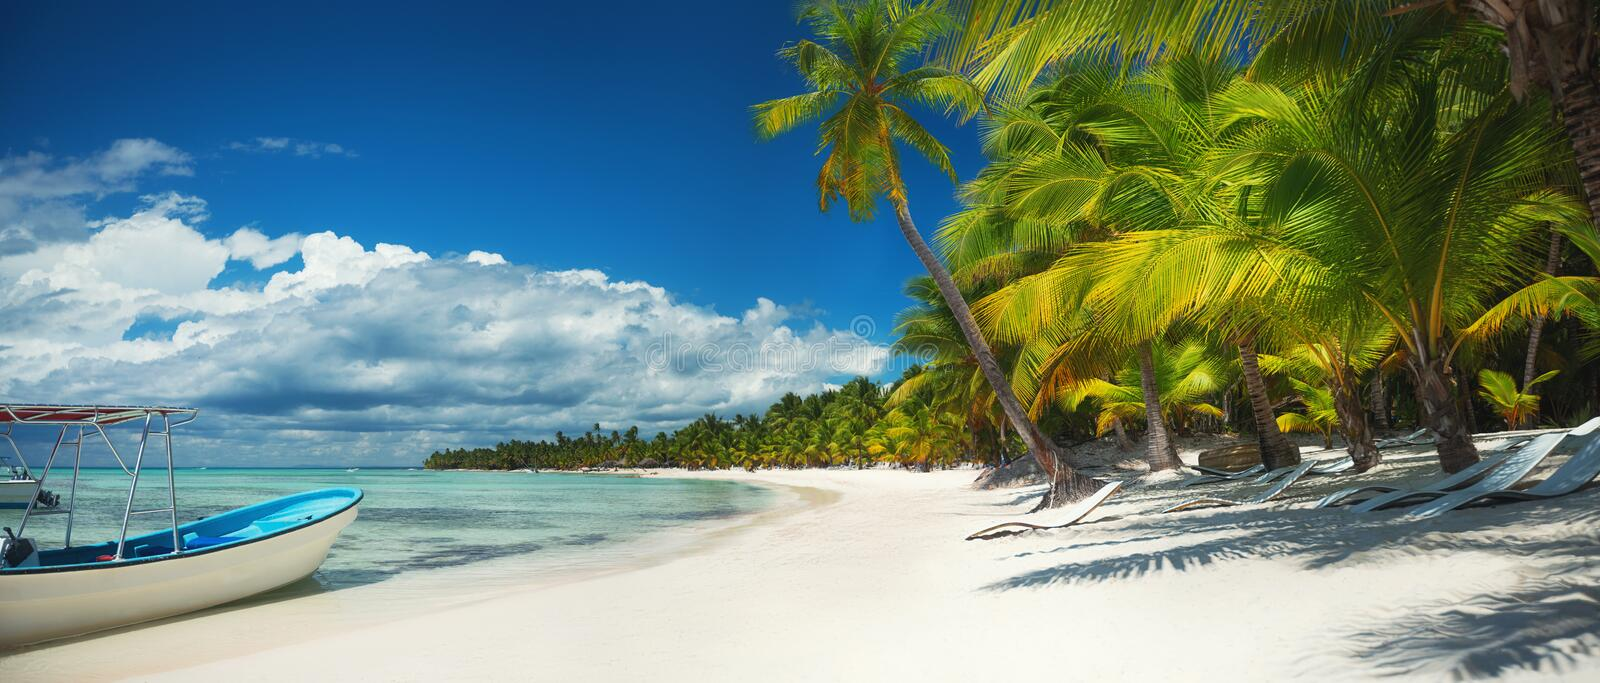 Palm trees on the tropical beach, Dominican Republic. Saona island. stock images